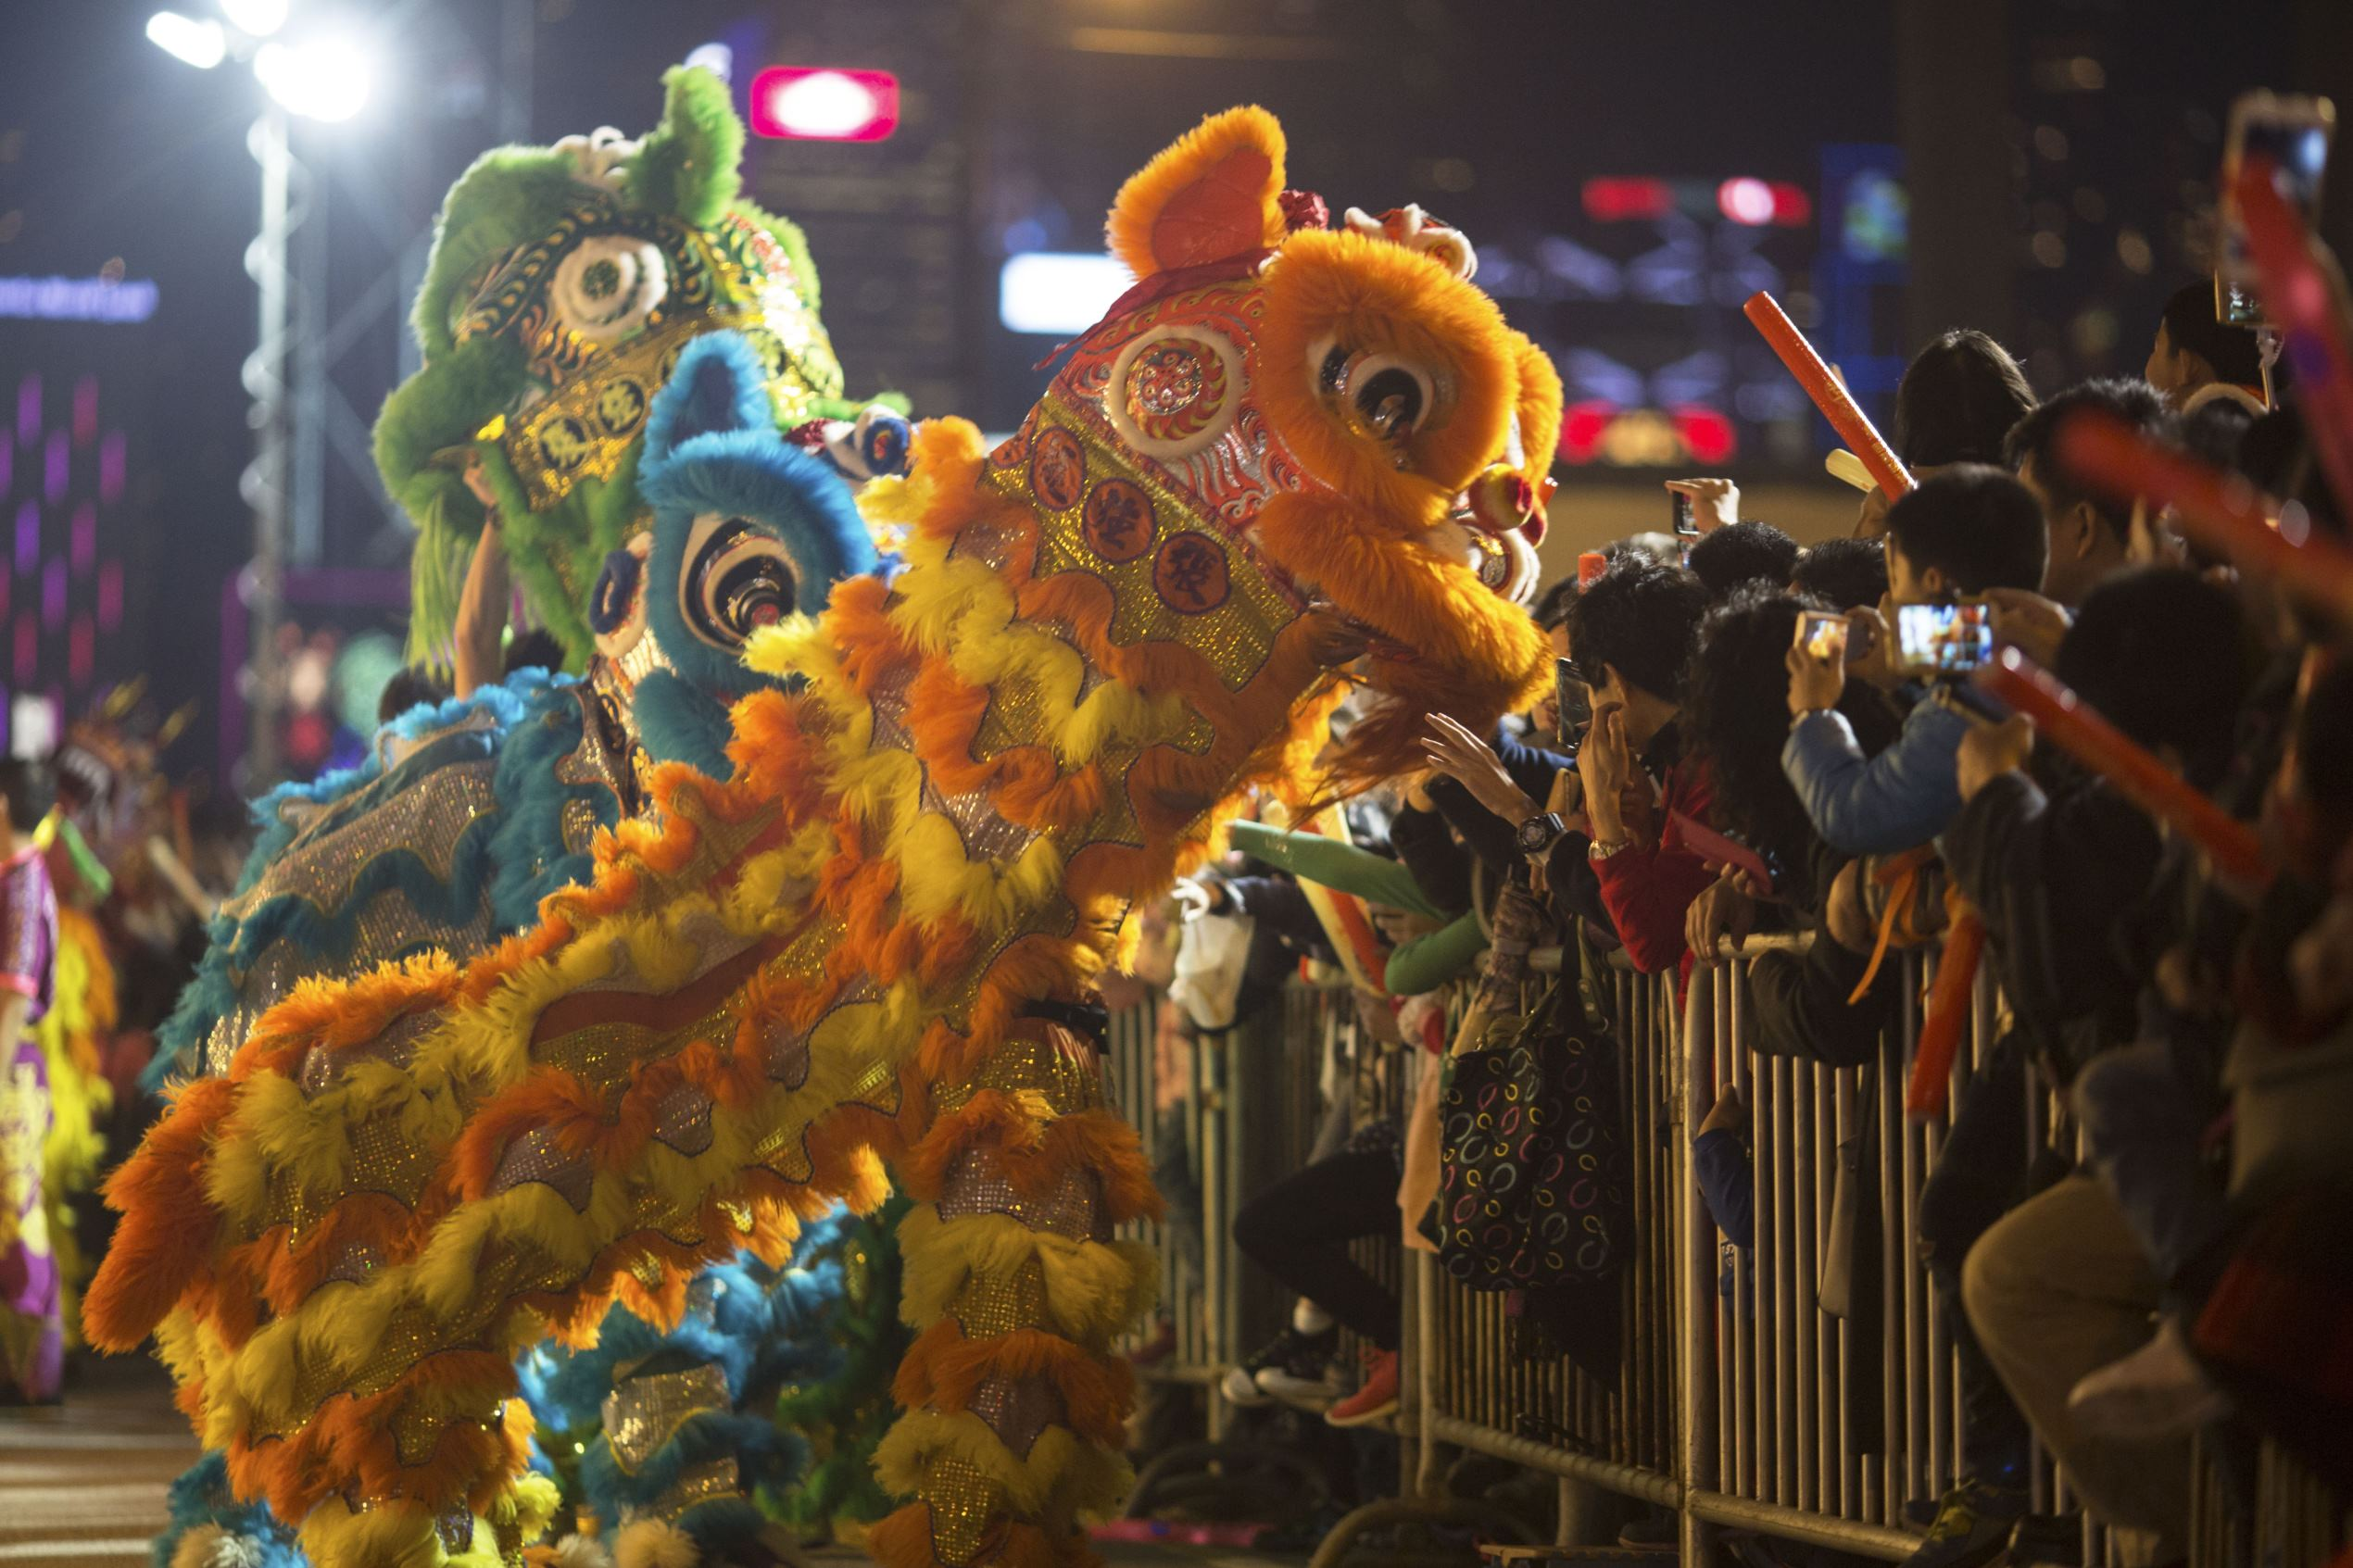 Lunar New Year in Hong Kong, China - 28 Jan 2017 Participants perform a lion dance during the International Chinese New Year Night Parade in Hong Kong, China, 28 January 2017. Chinese around the world celebrate the Lunar New Year on 28 January 2017.  FAVRE/EPA/Shutterstock/Rex Images